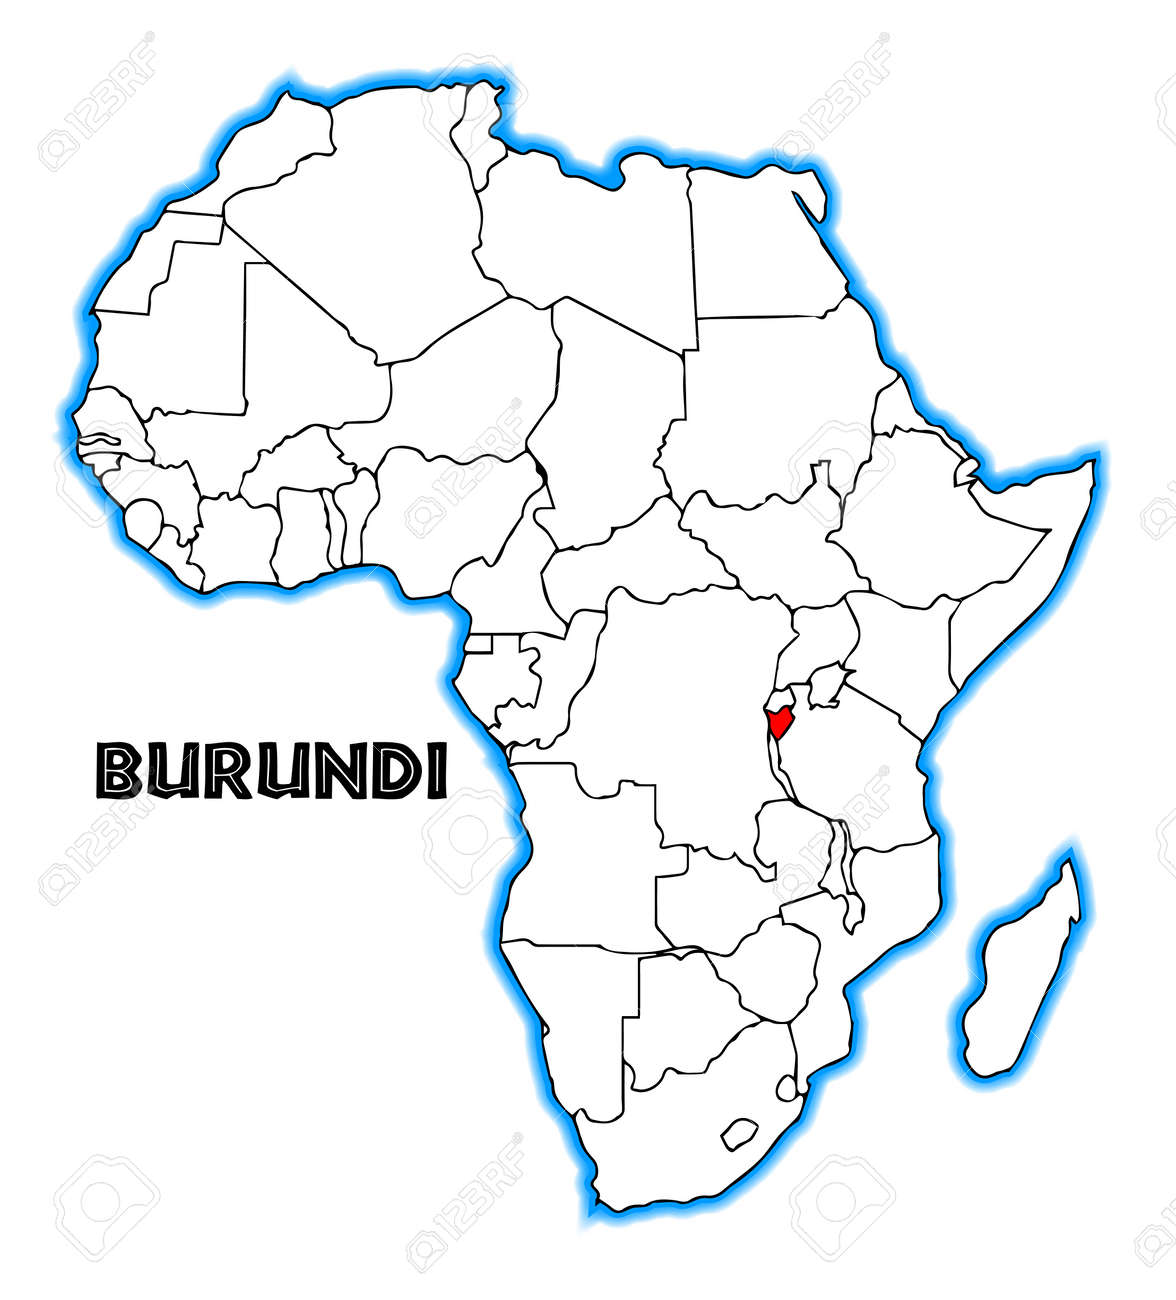 Burundi Outline Inset Into A Map Of Africa Over A White Background